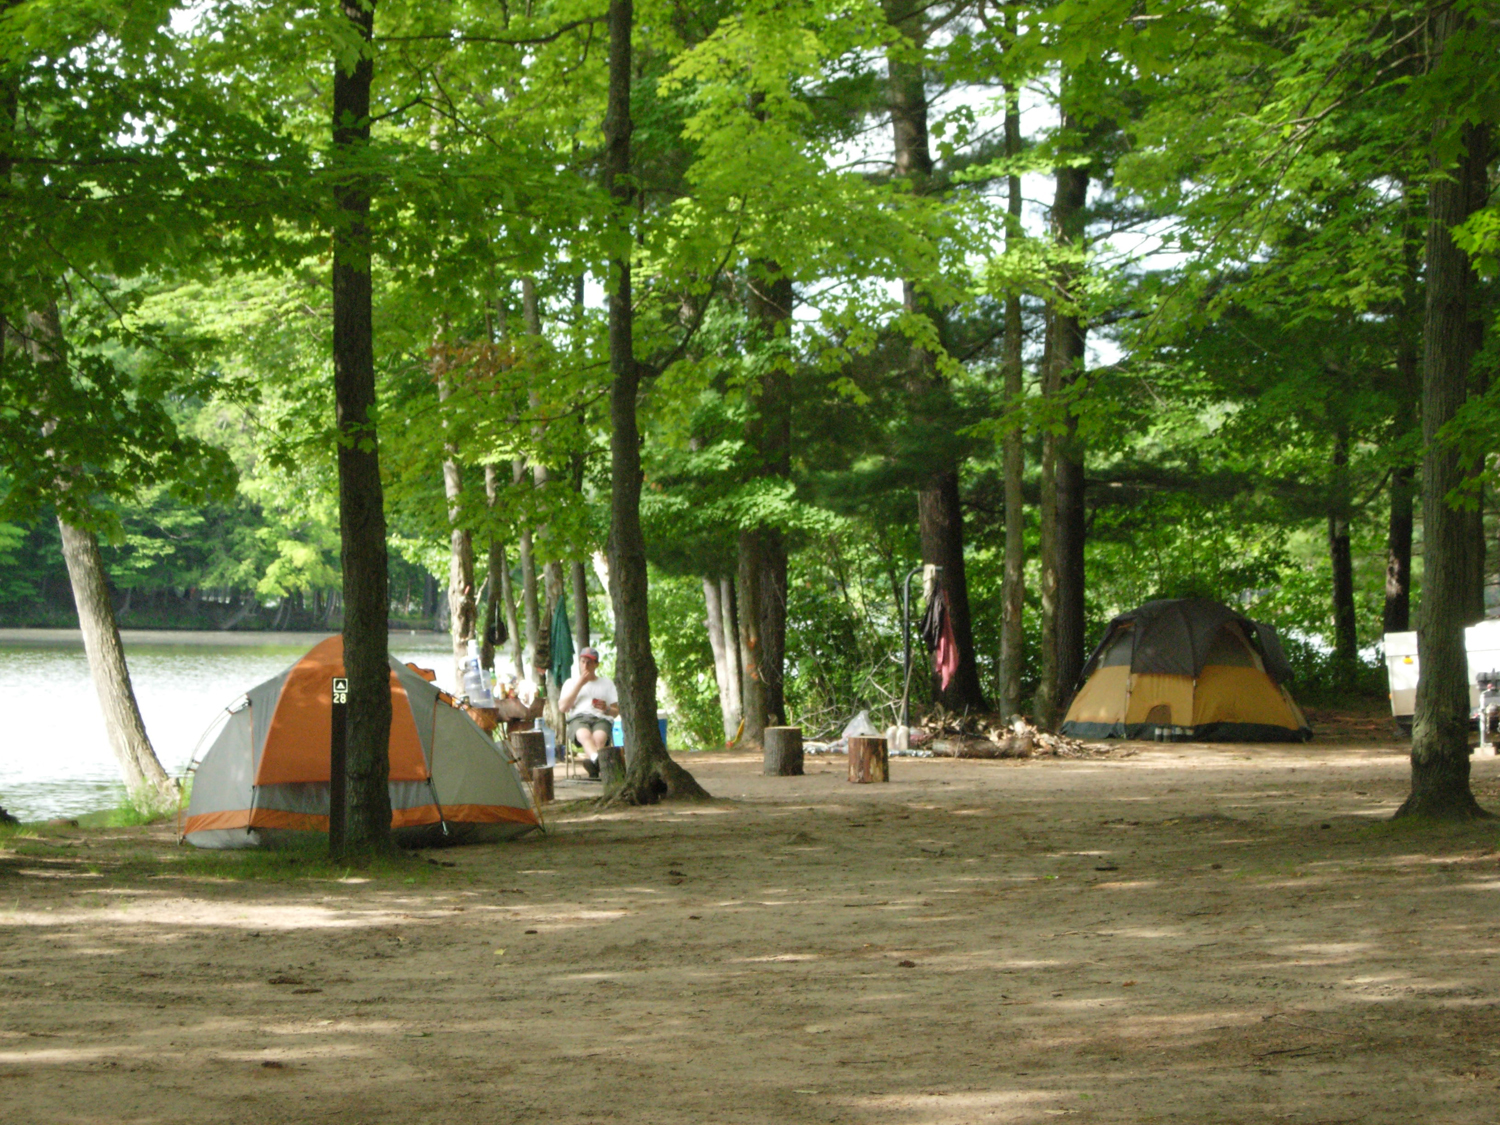 A campsite located on the Huron-Manistee National Forests